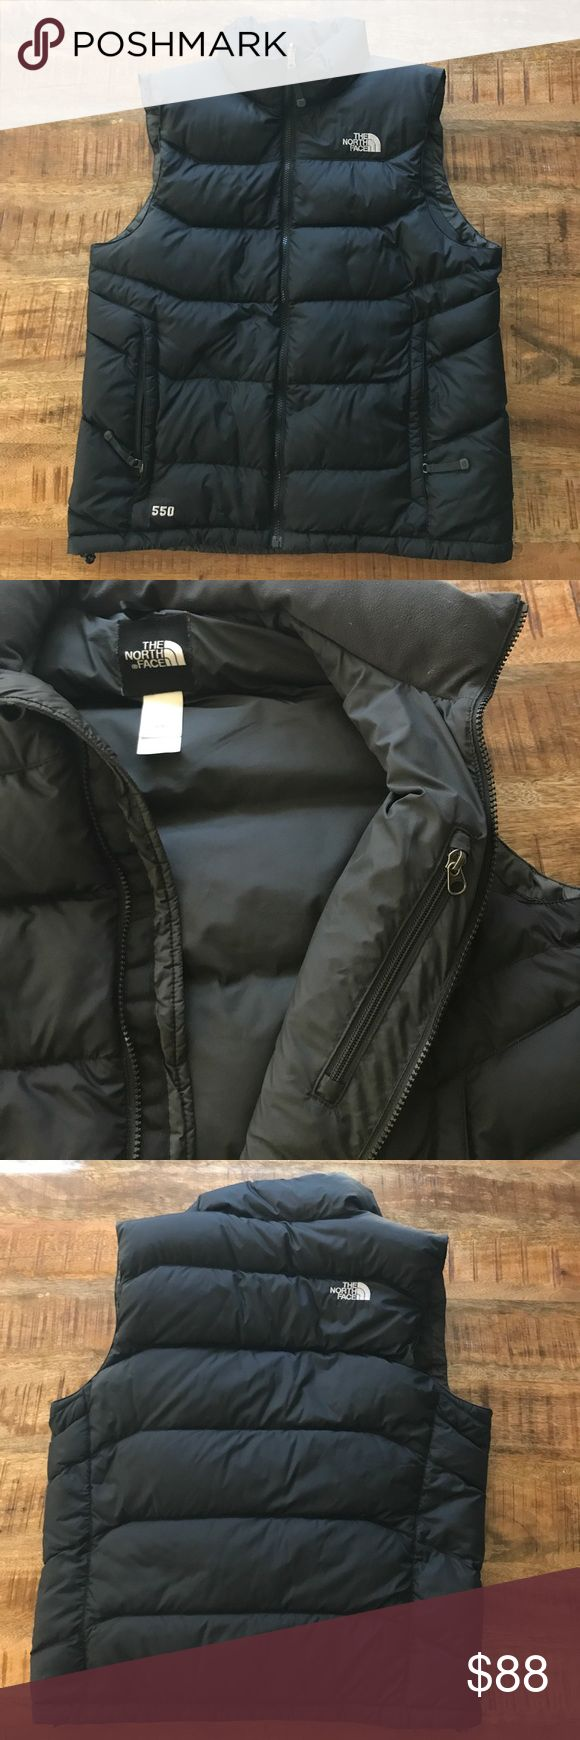 Men's North Face Nuptse down vest Great condition! Two exterior hip zip pockets, one left interior chest zip pocket. 'The North Face' logo in gray stitching on left chest and also right shoulder. Very slight imperfection near left pocket on front (see last pic). Small hole in nylon. Drawstring hip cinch inside. The North Face Jackets & Coats Vests